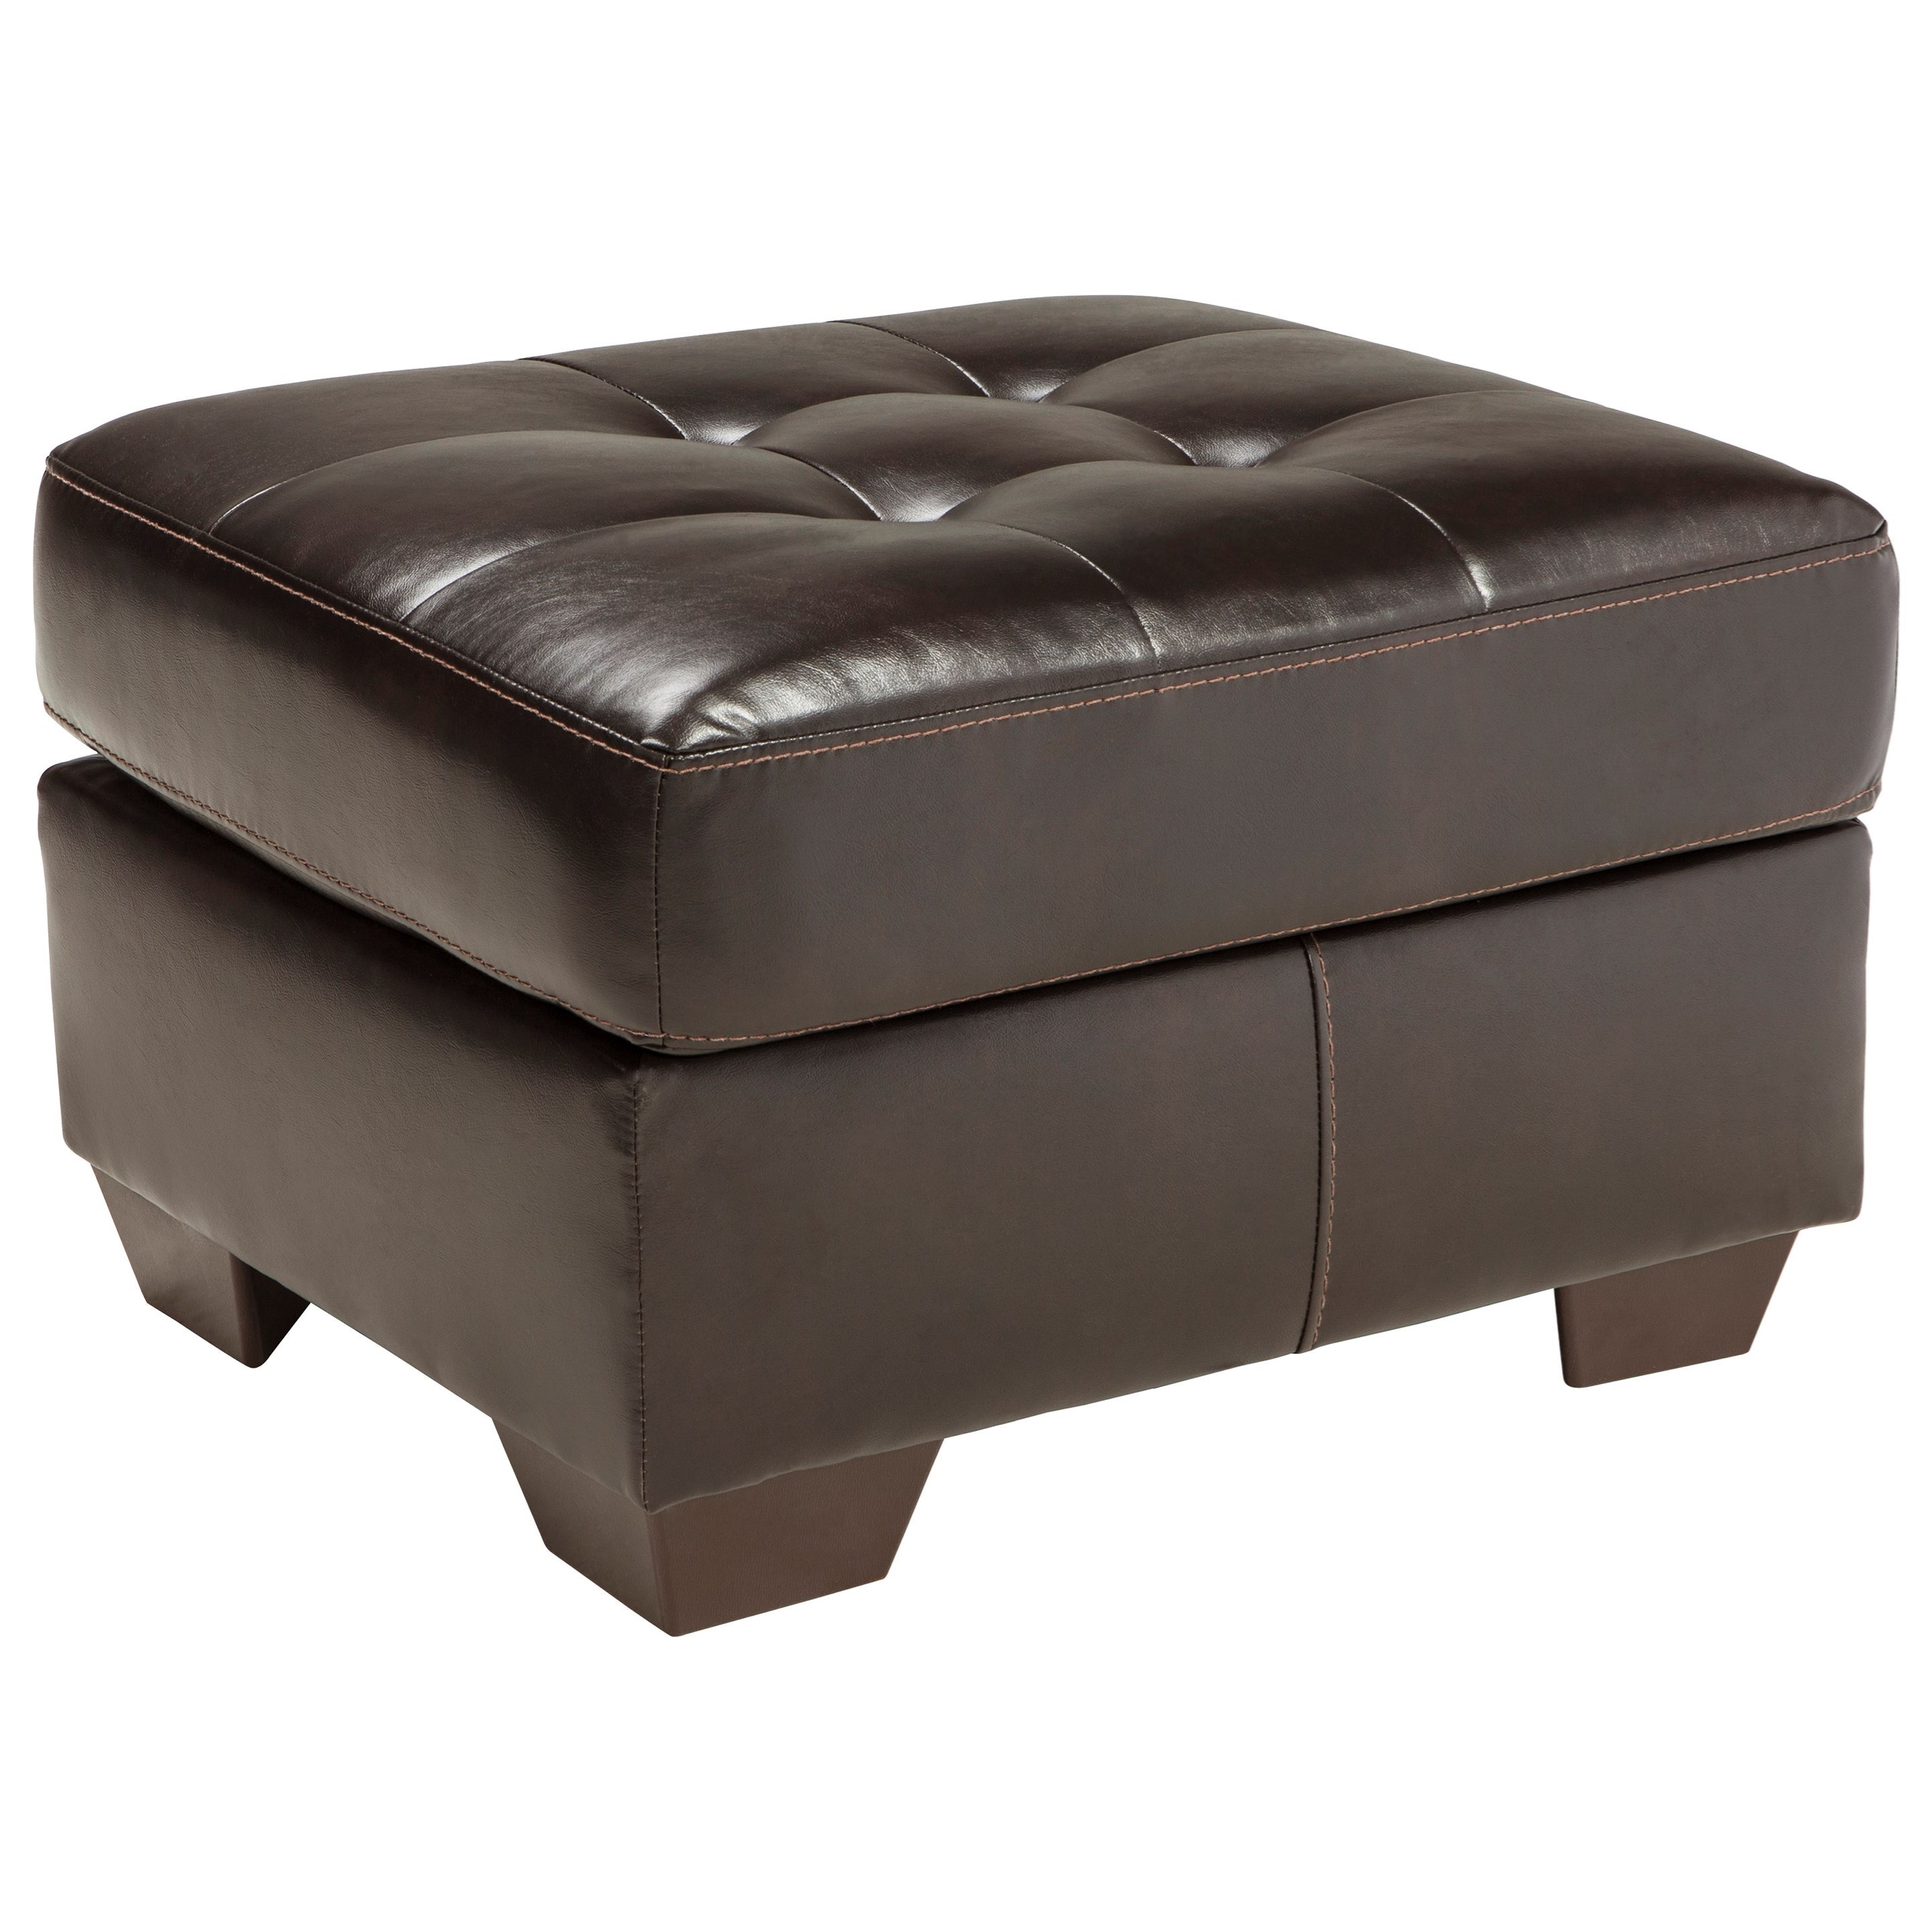 Benchcraft Coppell DuraBlend® Ottoman - Item Number: 5900114